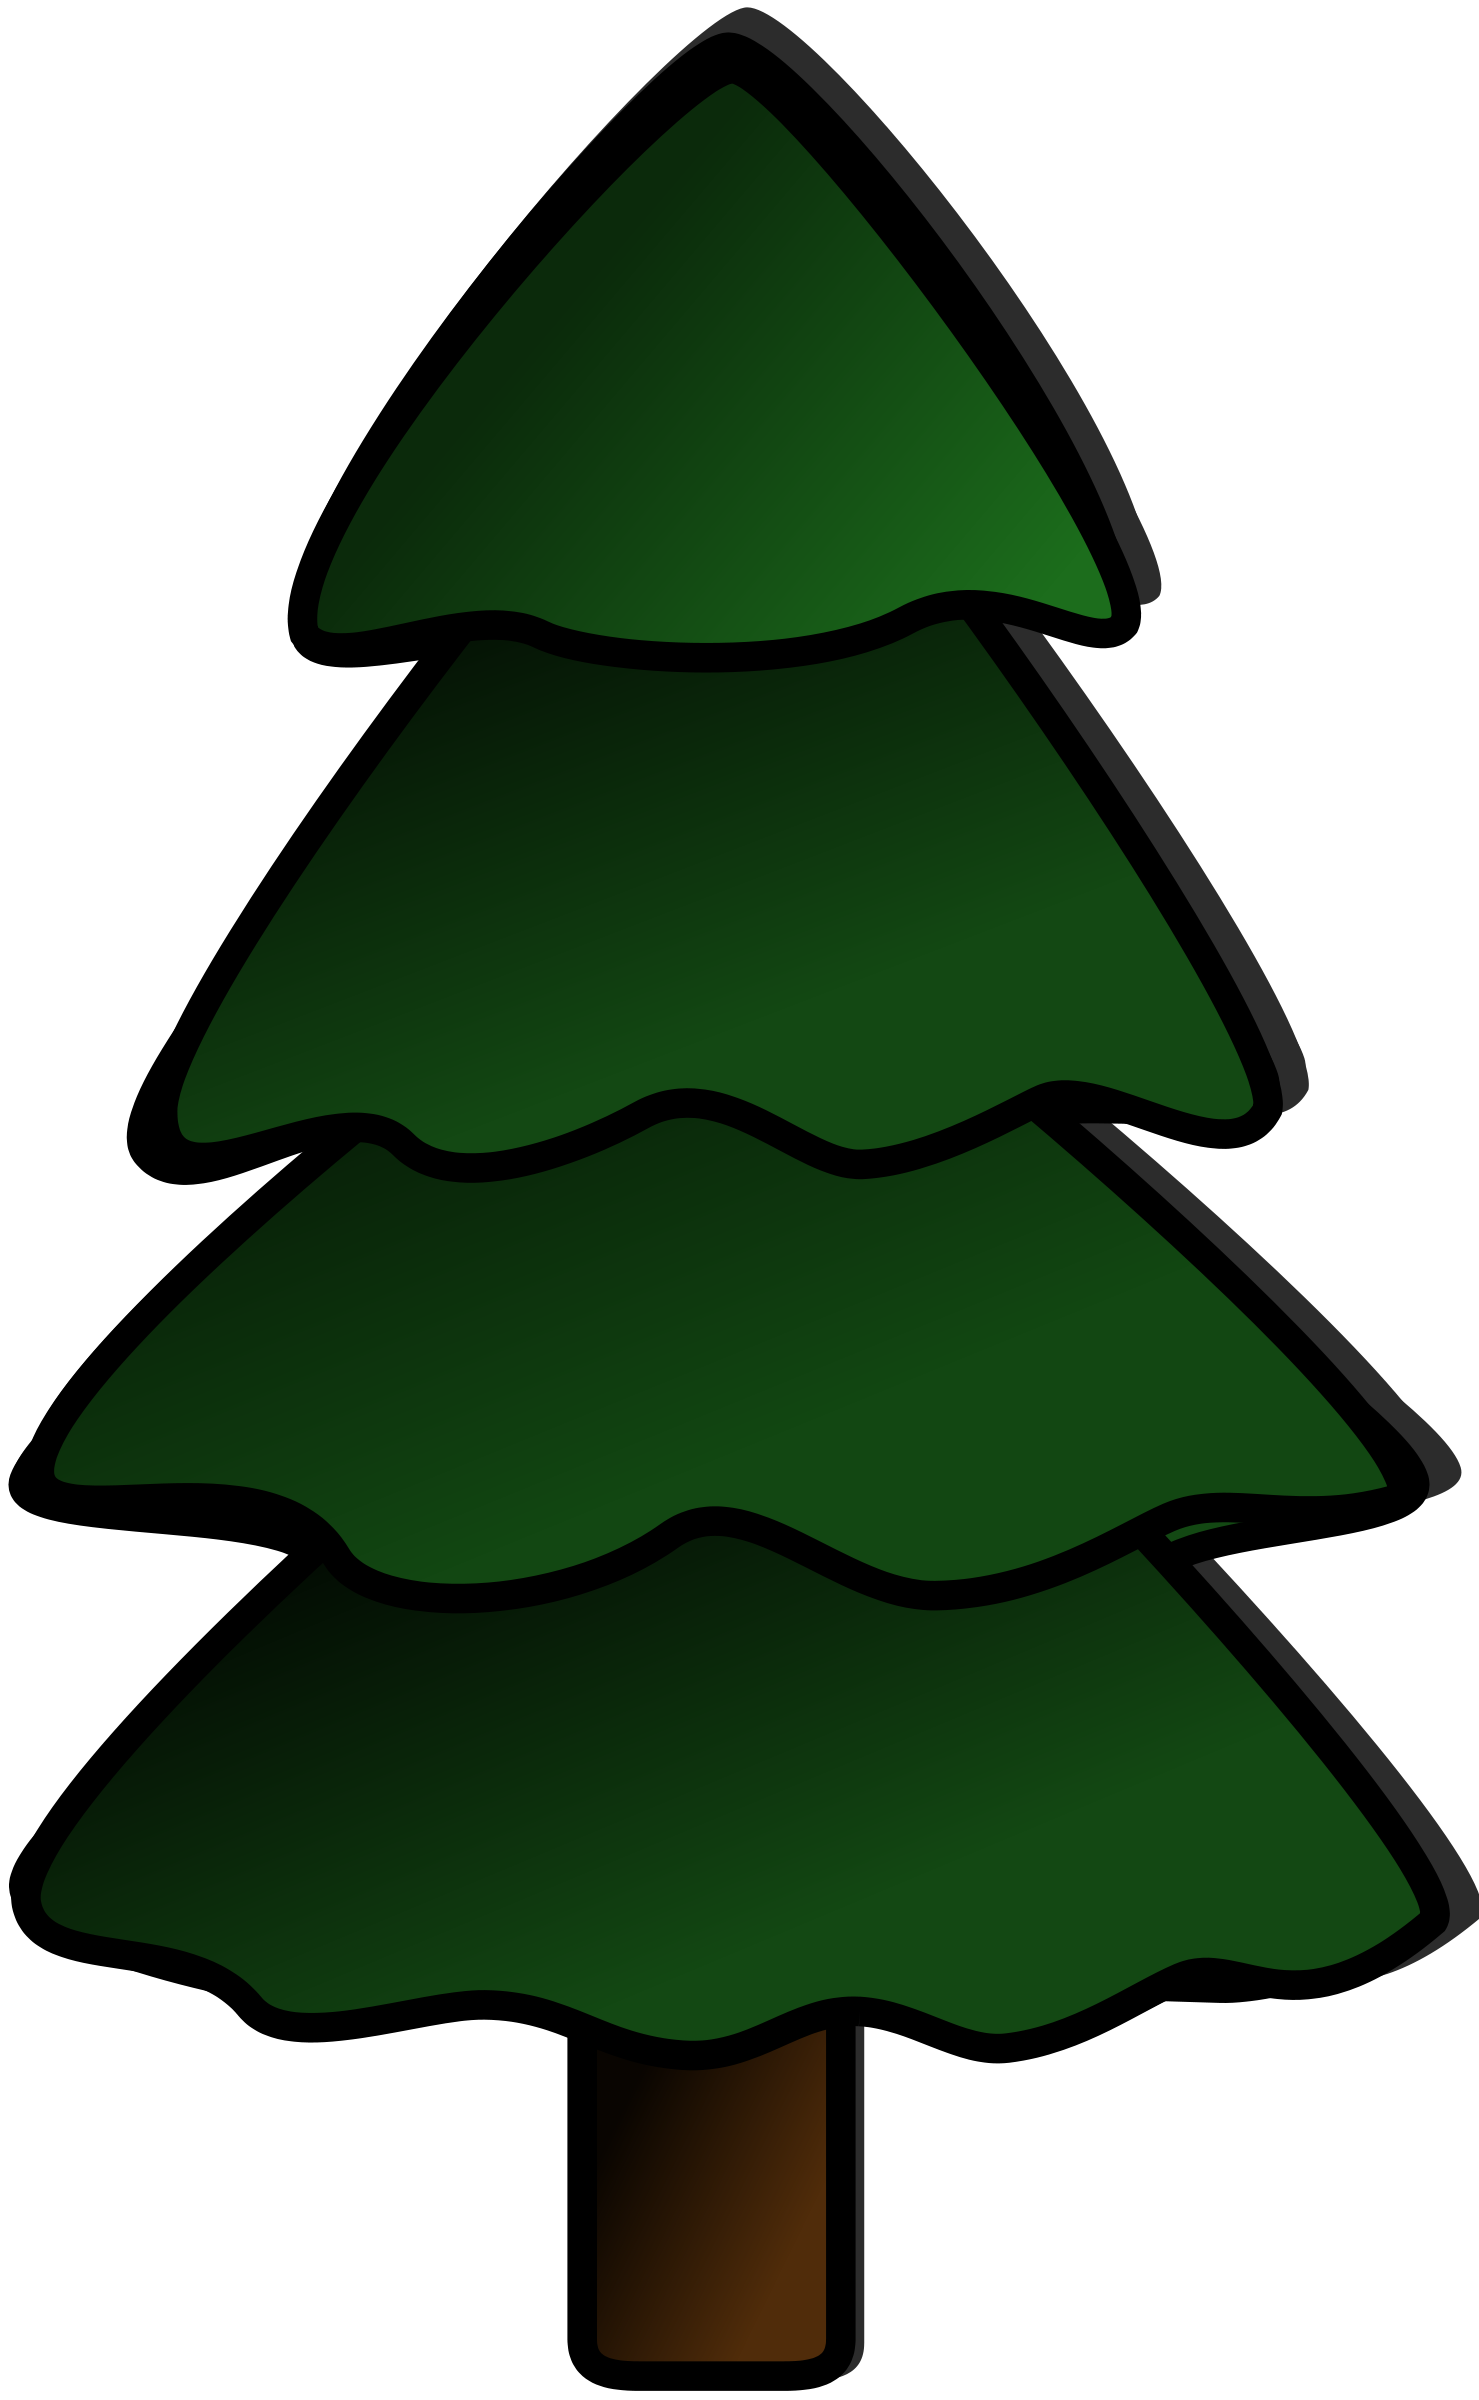 Pine clipart #1, Download drawings